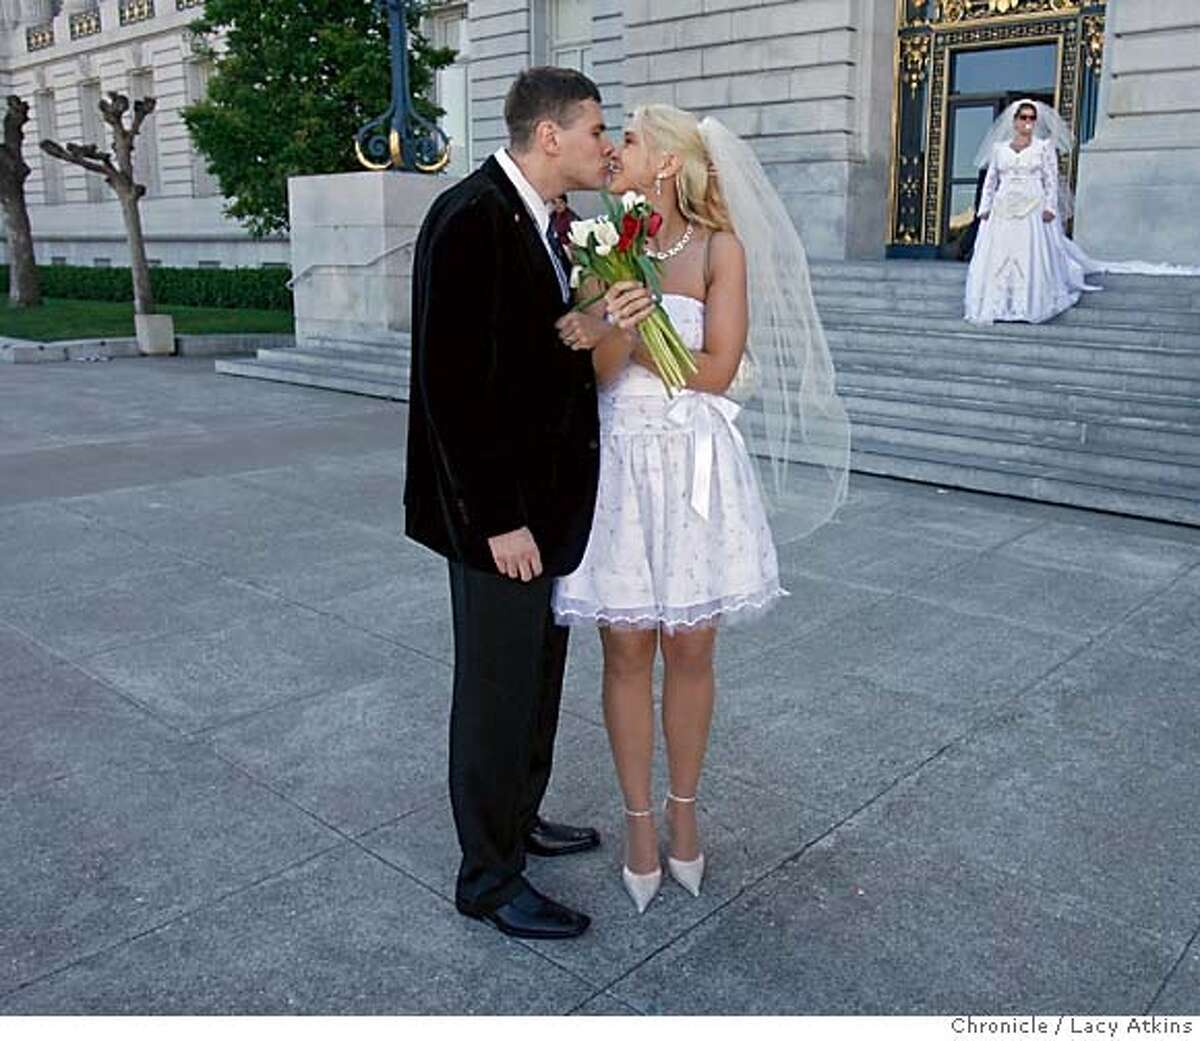 """Laurynas Misevieius and his bride Jevgenija Fedosejeva kiss after getting married at San Francisco's city Hall as Gene Segno ( in the background) with the Equality California wears tape that says, """"I DO"""" over her mouth to protest that Gay and Lesbian were being denied the right to marry on Valentines Day. couple go the City Hall in hopes to get married on Valentines Day, but were denied the right, Feb. 14, 2006, in San Francisco. Photographer:Atkins, Lacy"""